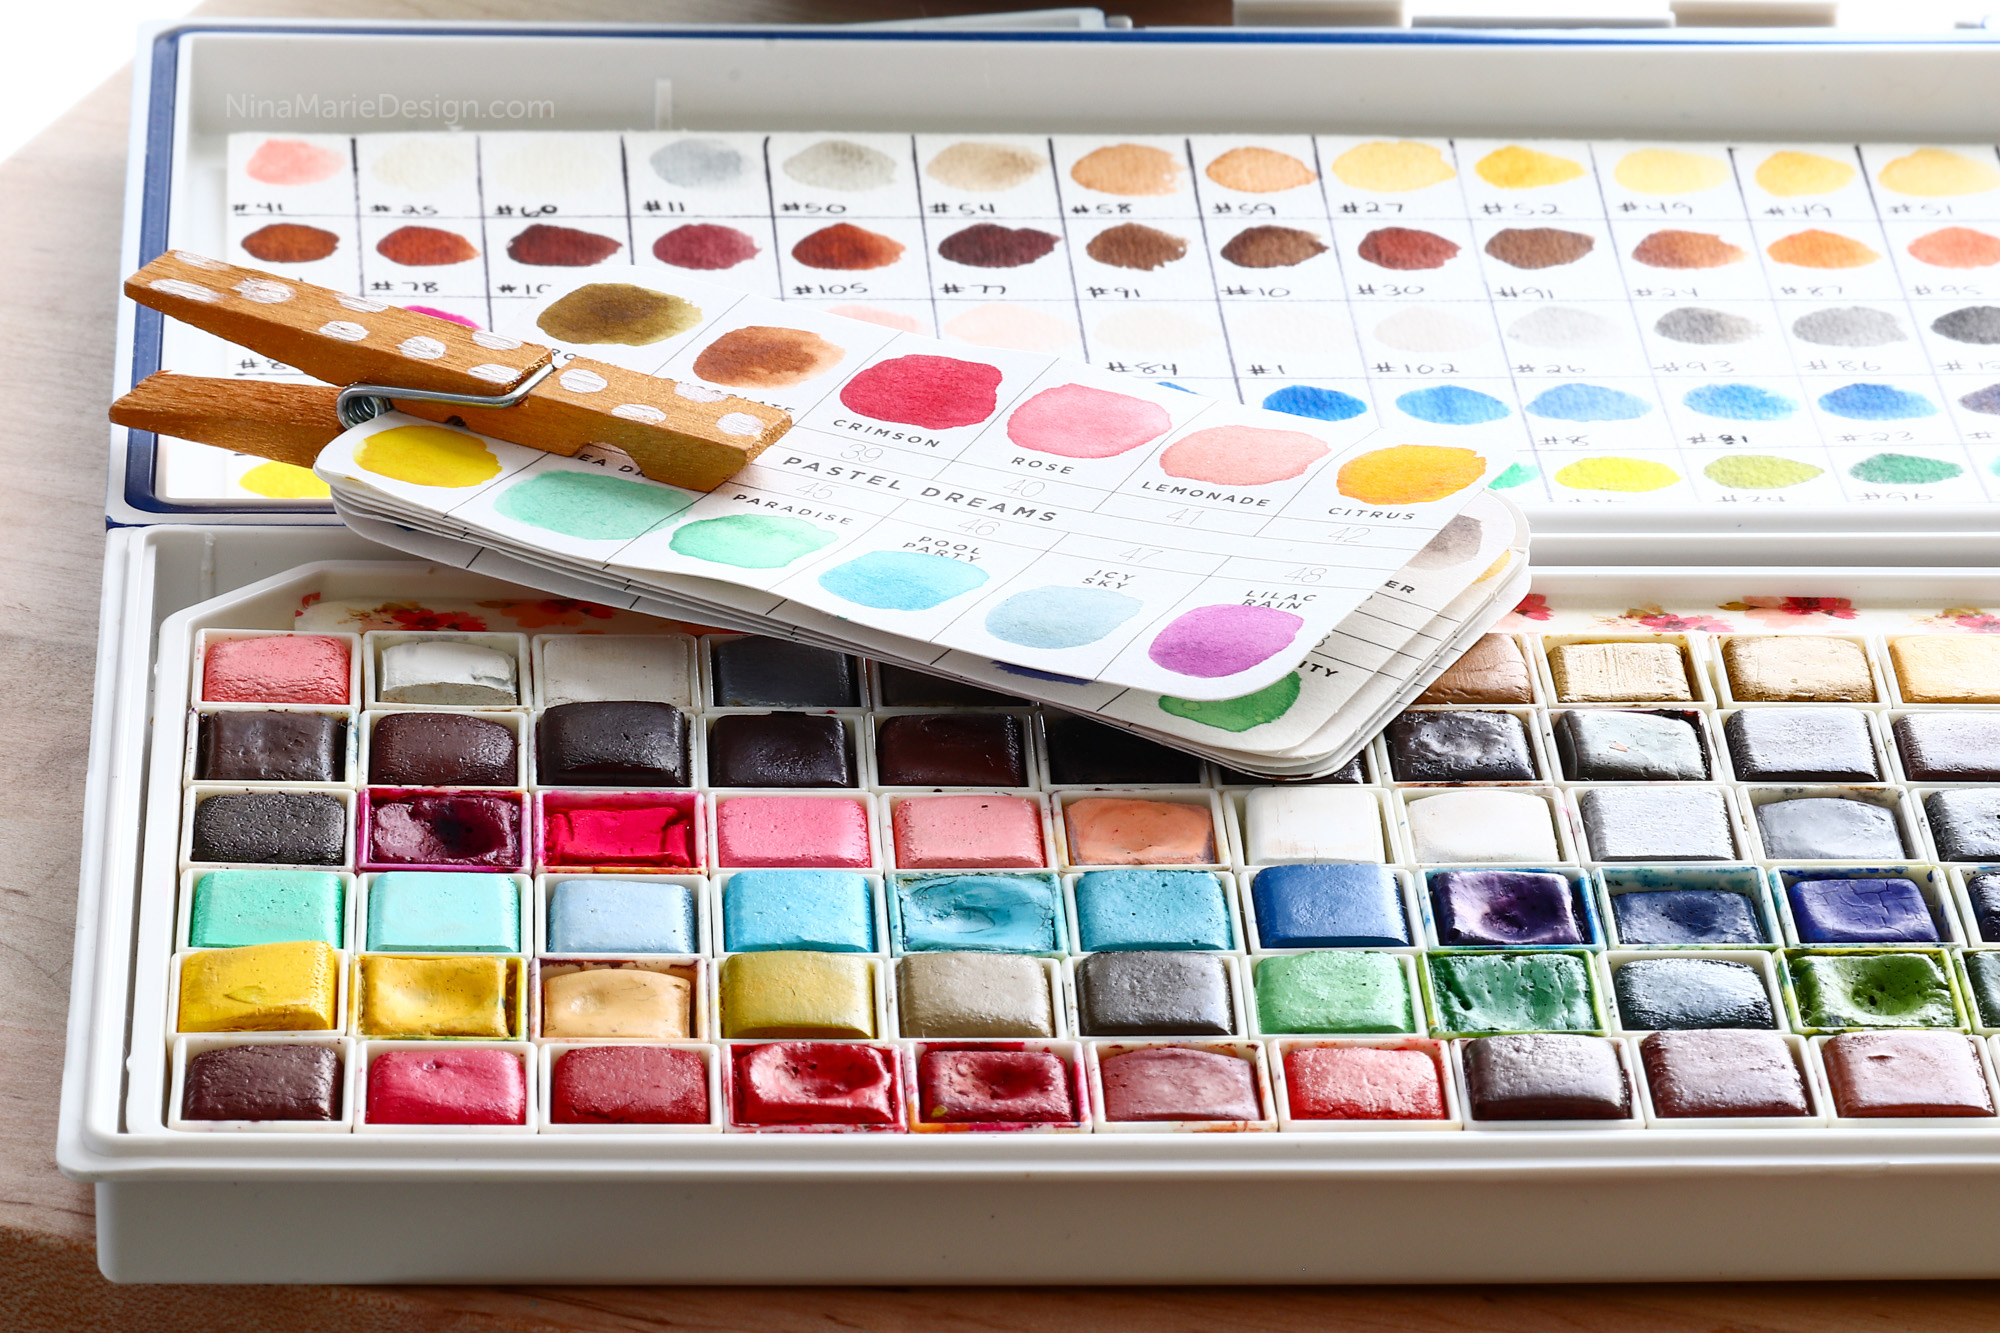 Prima Watercolor Confections: How I Store Them